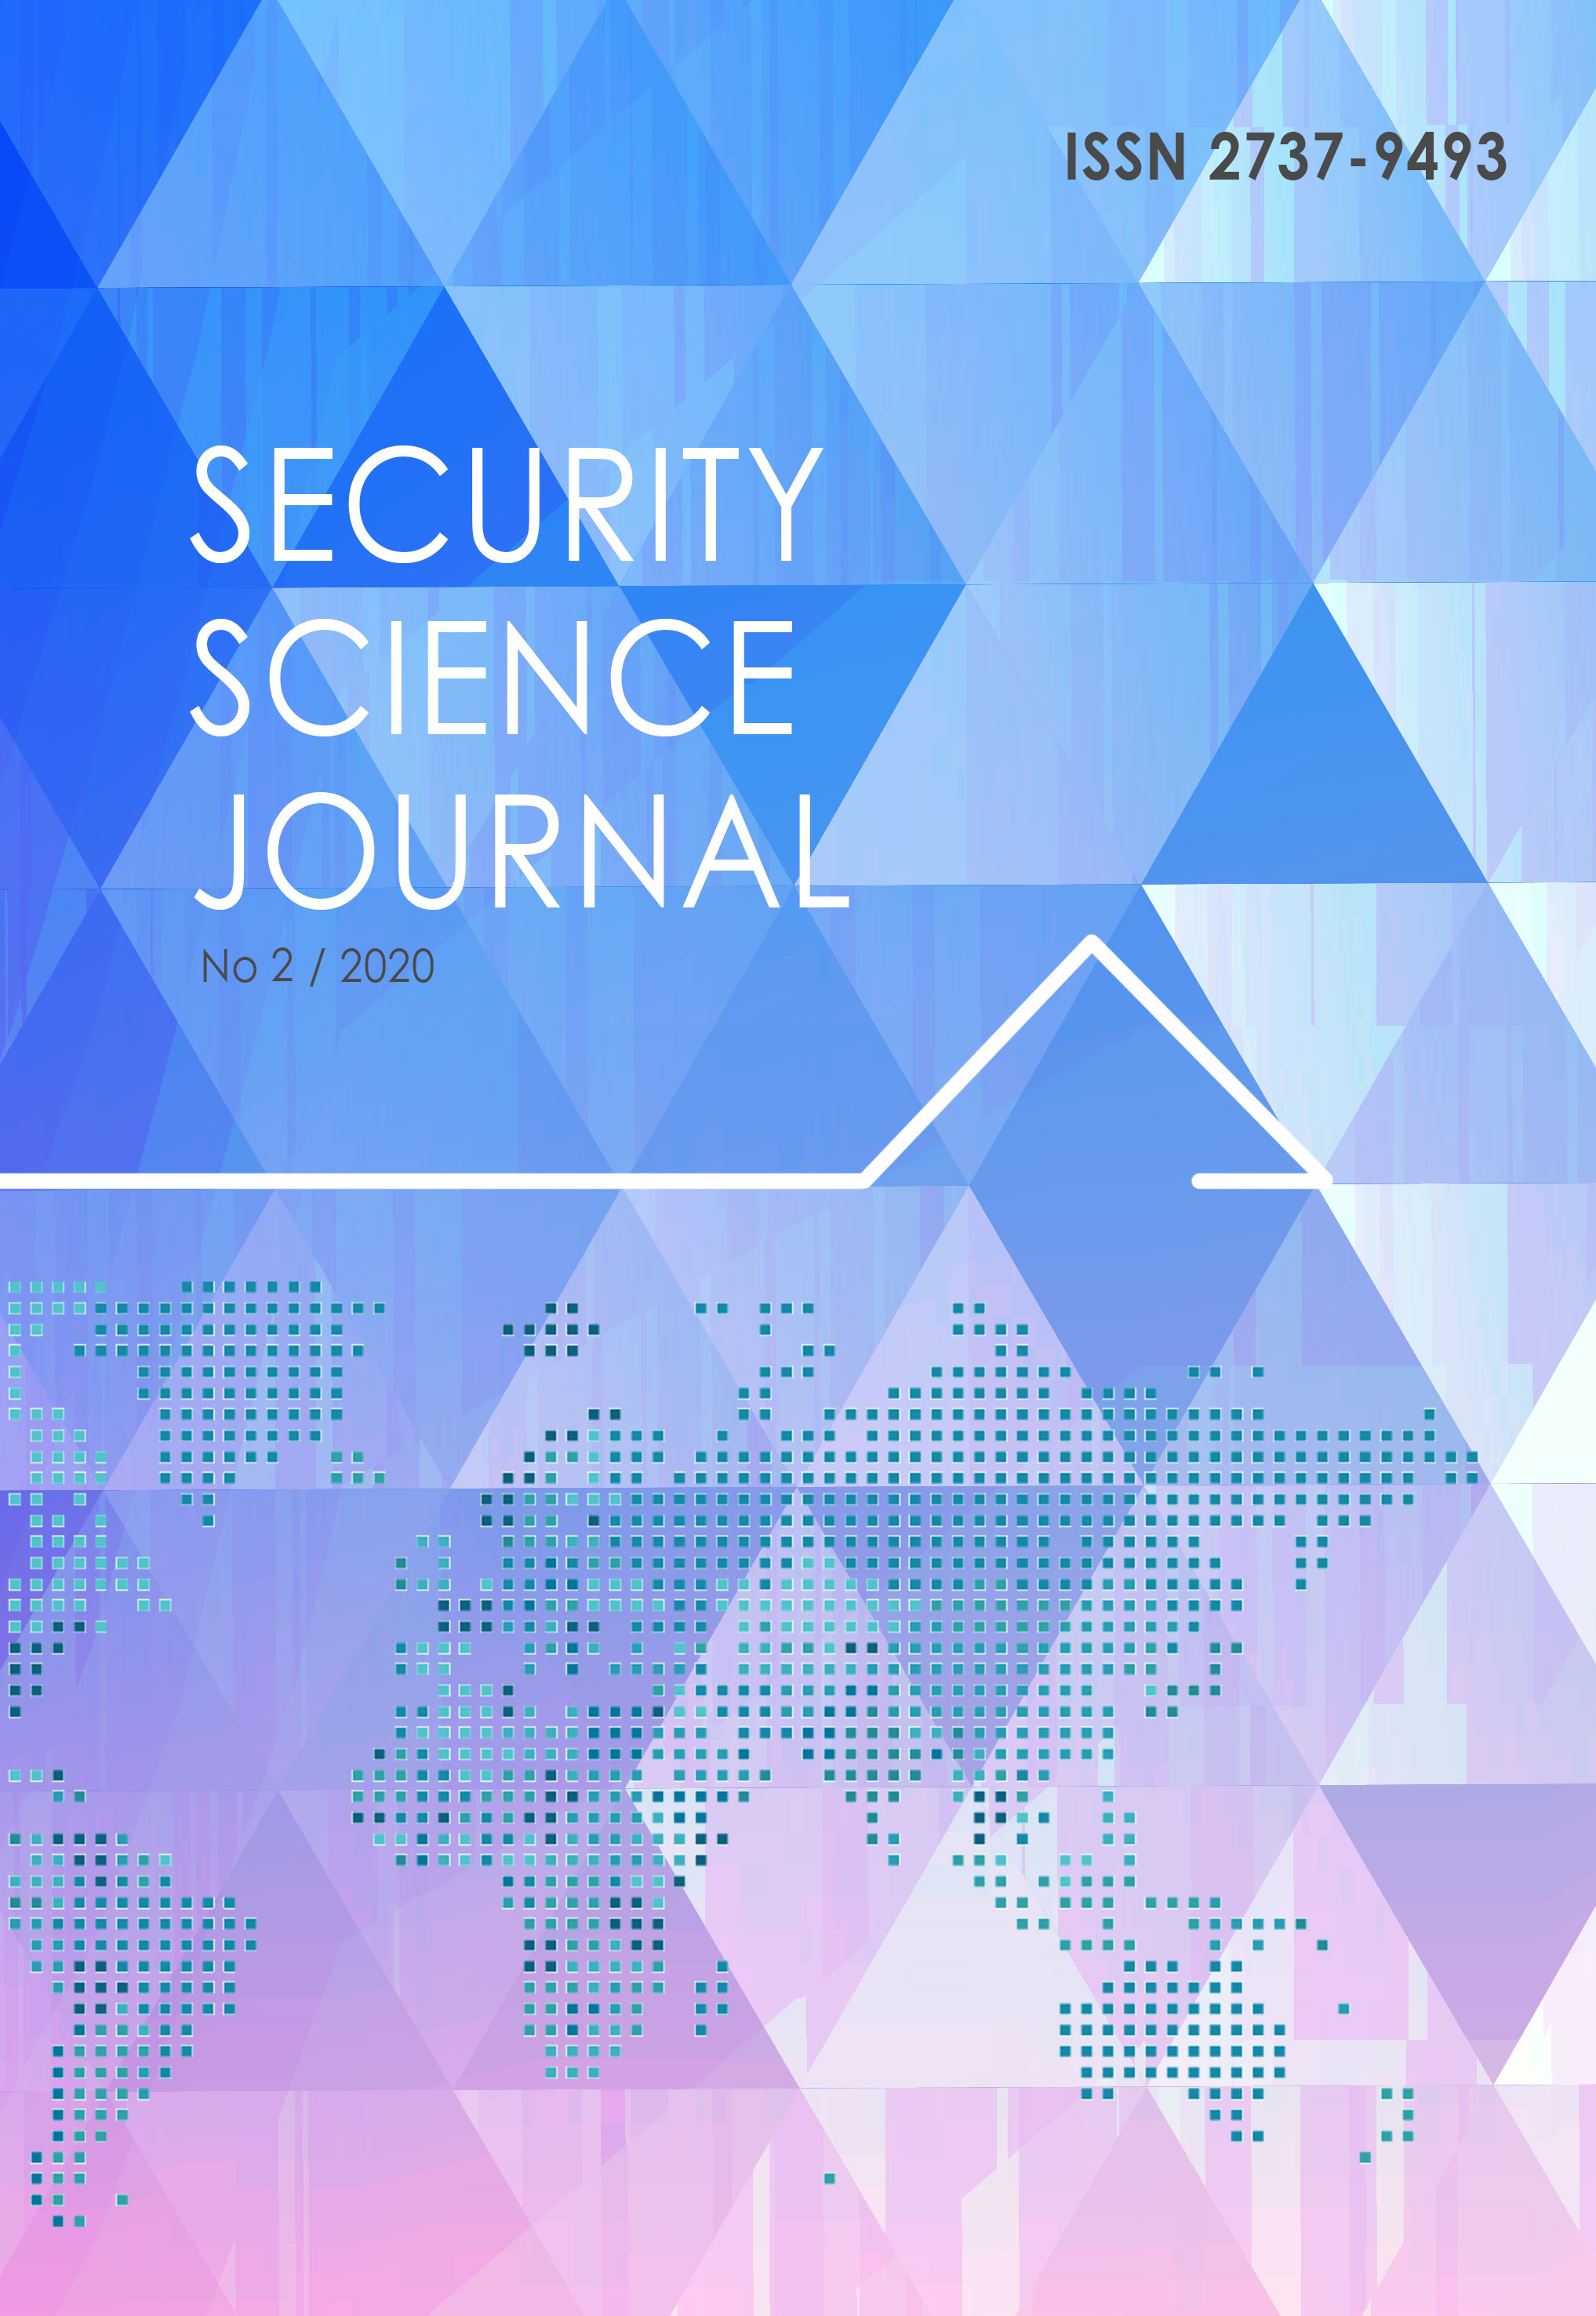 Security Science Journal Vol.1 No.2